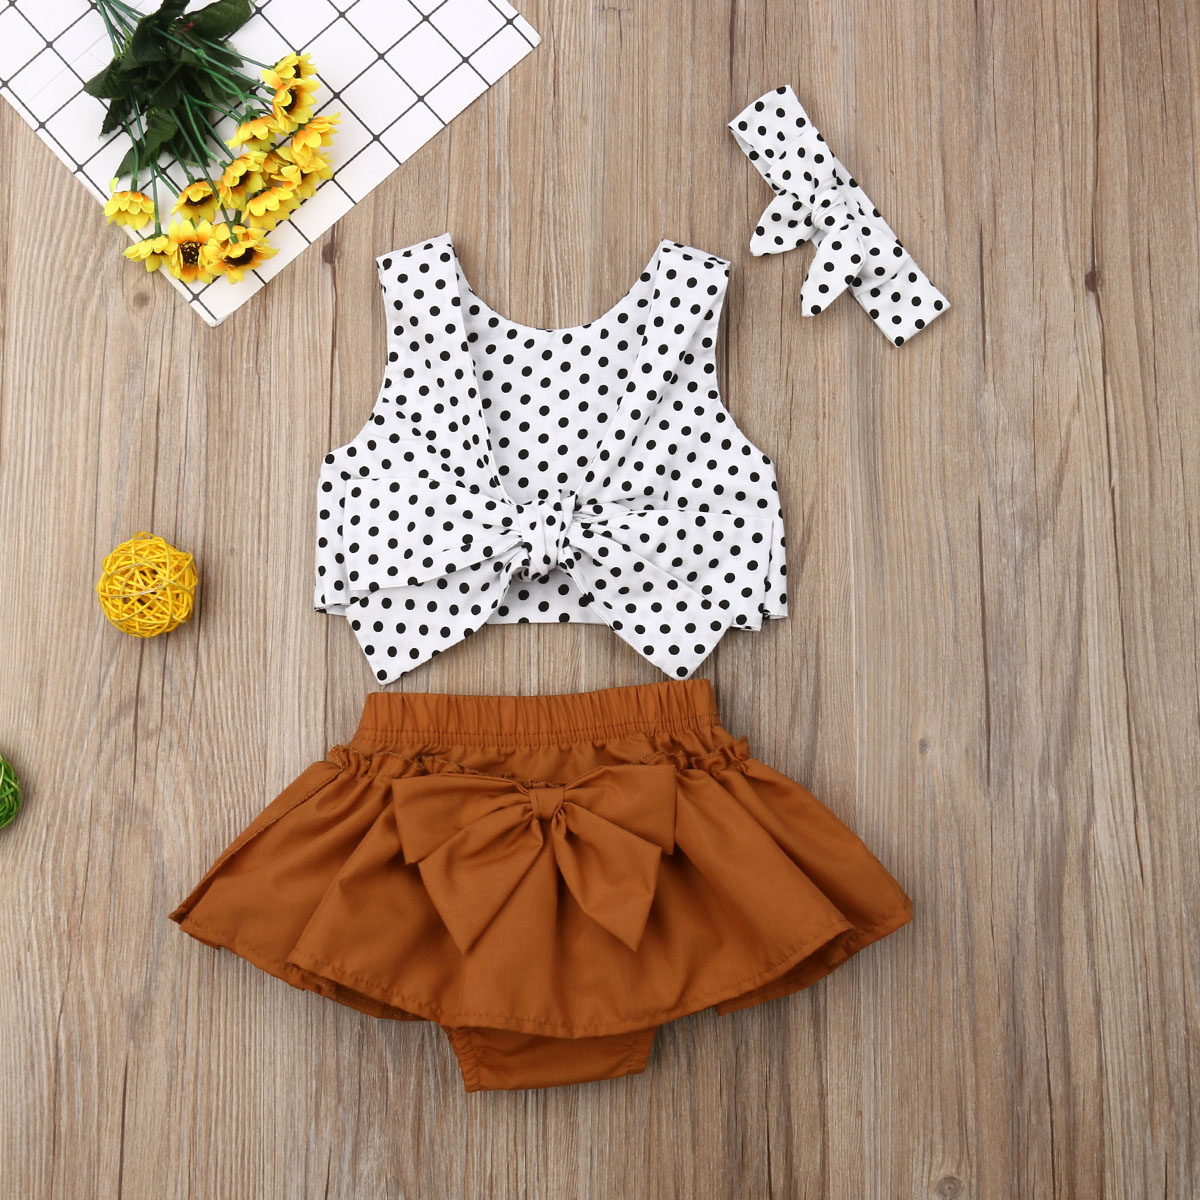 Newborn Infant Kid Girls Polka Dot Tops Headband Bow Knot Skirt 3PCS Clothes Oddler Kids Baby Girl Tube Tops